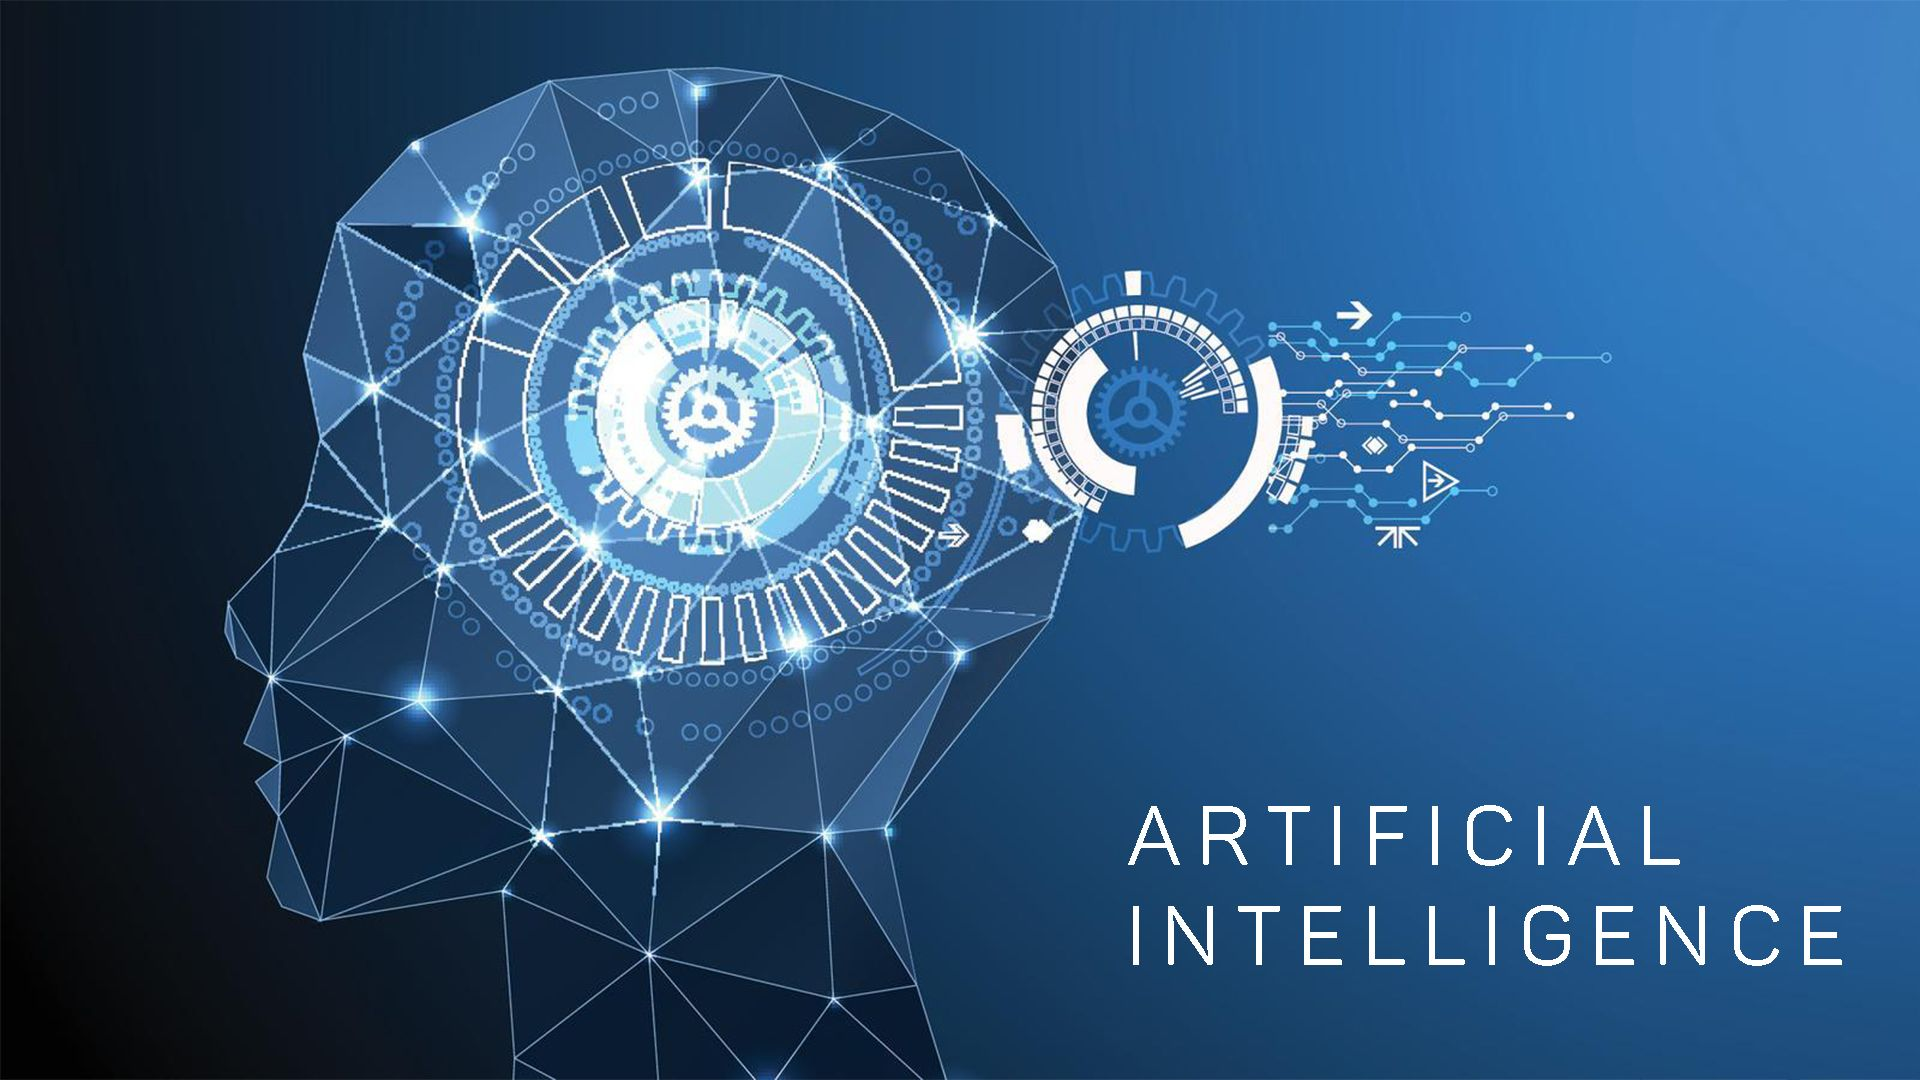 Artificial Intelligence The Top Technology Trend That Will Dominate Discussi In 2020 Ai Artificial Intelligence Artificial Intelligence Article Artificial Intelligence